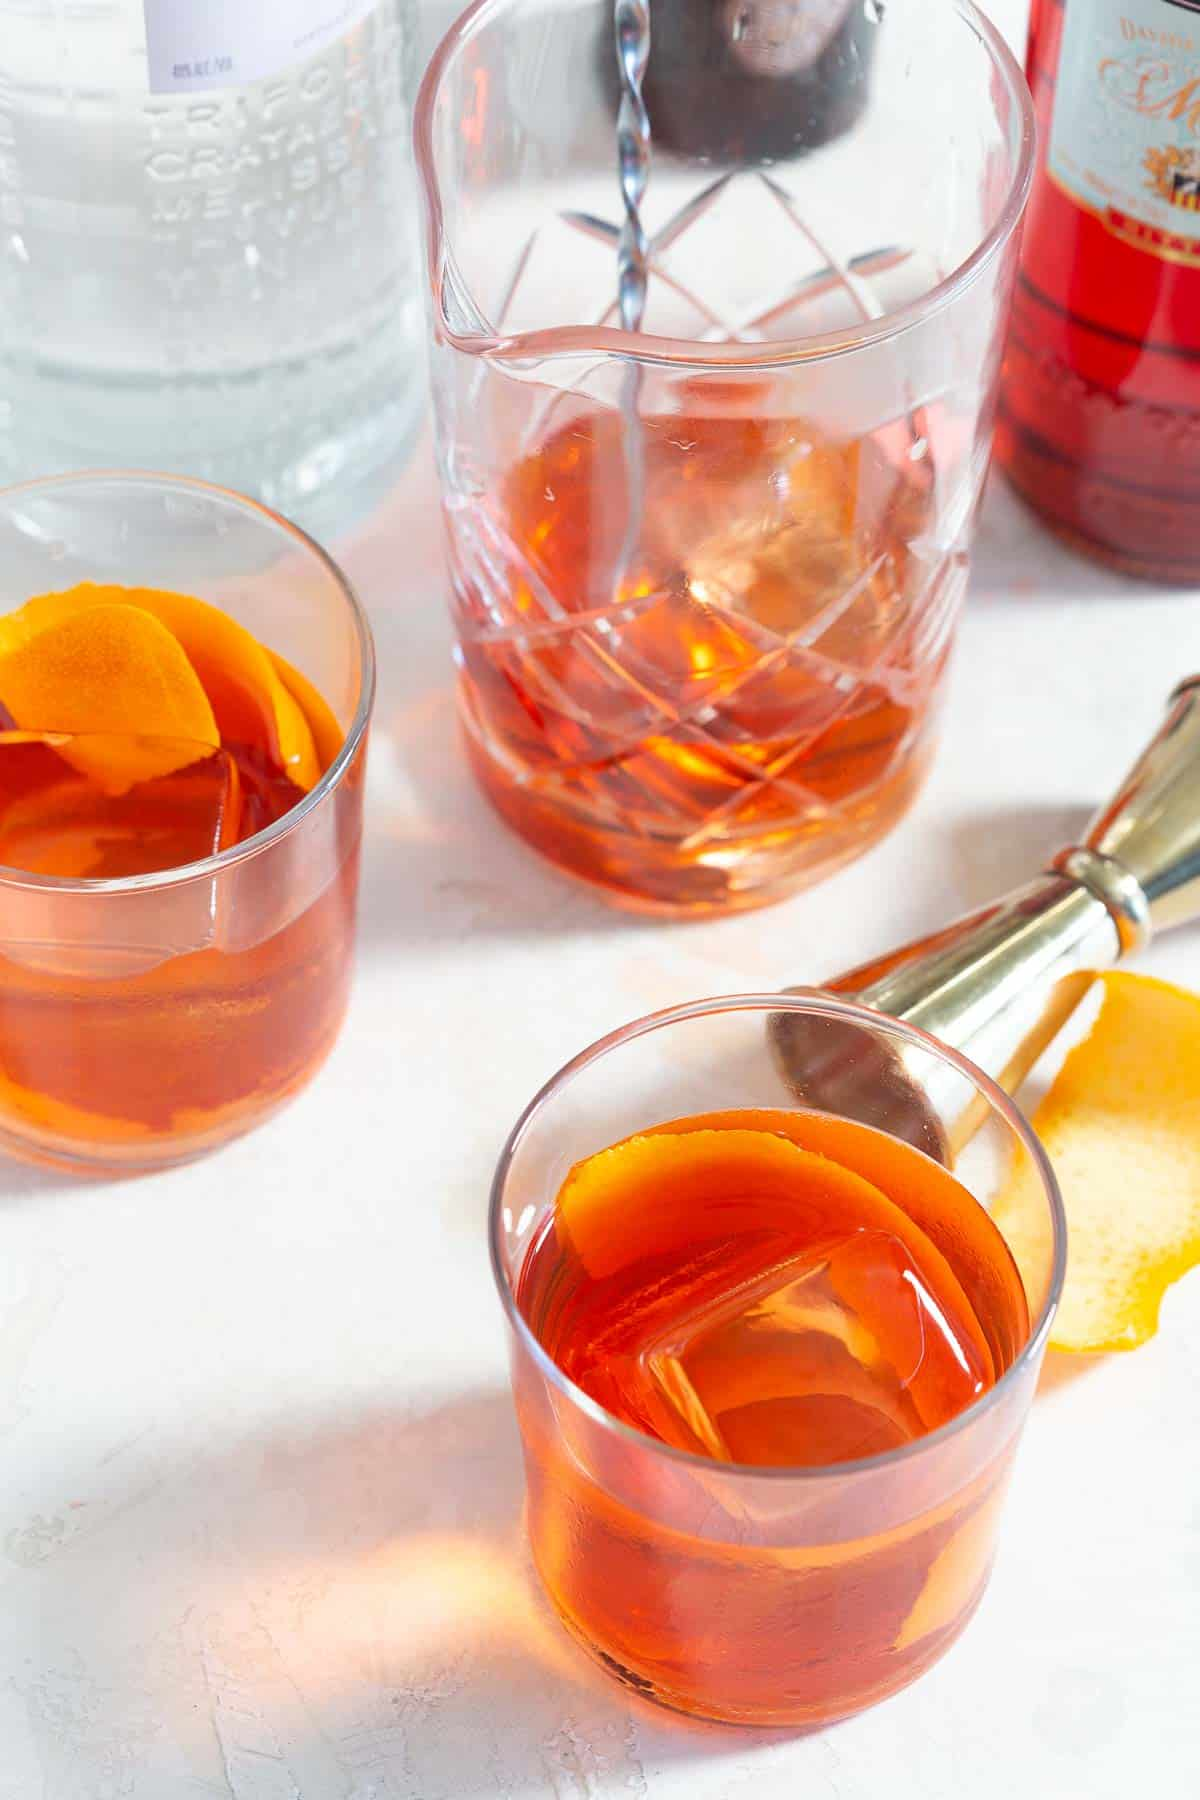 Two negronis in glasses and a mixing glass being made